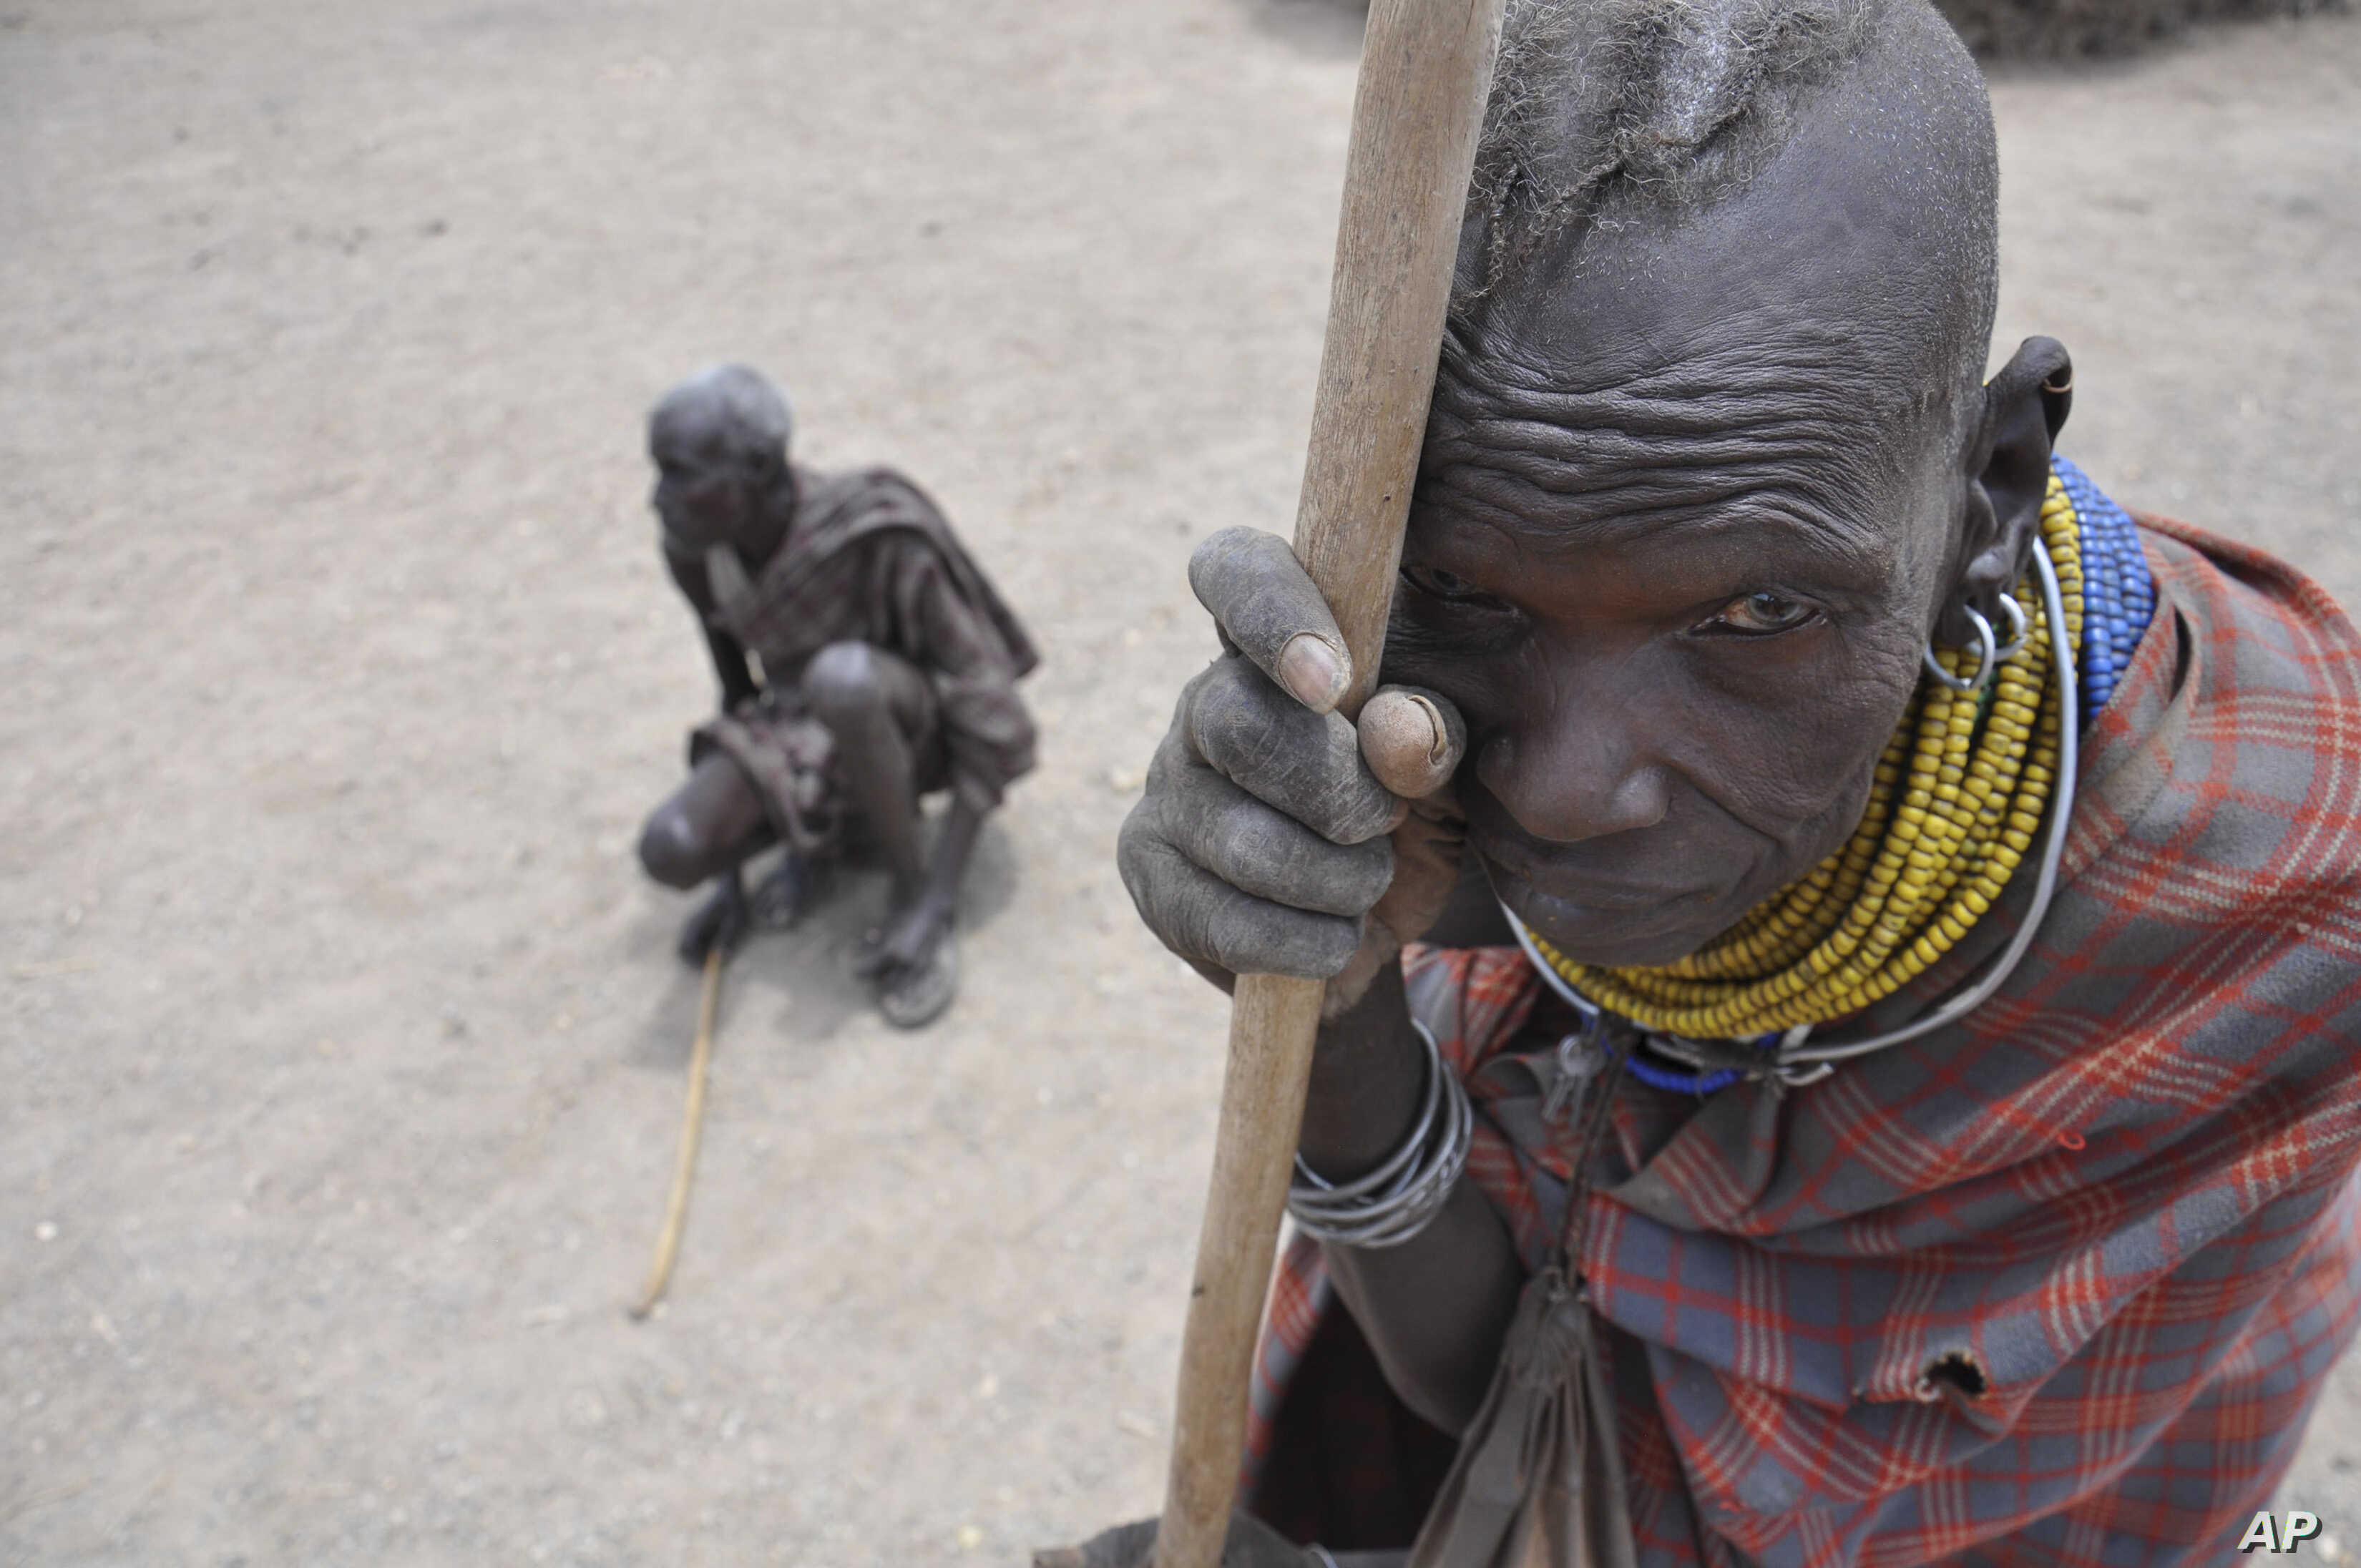 FILE - In this Aug. 30, 2011 photo, an elderly woman and her husband wait during a famine for the distribution of food from Oxfam, in central Turkana district, Kenya.